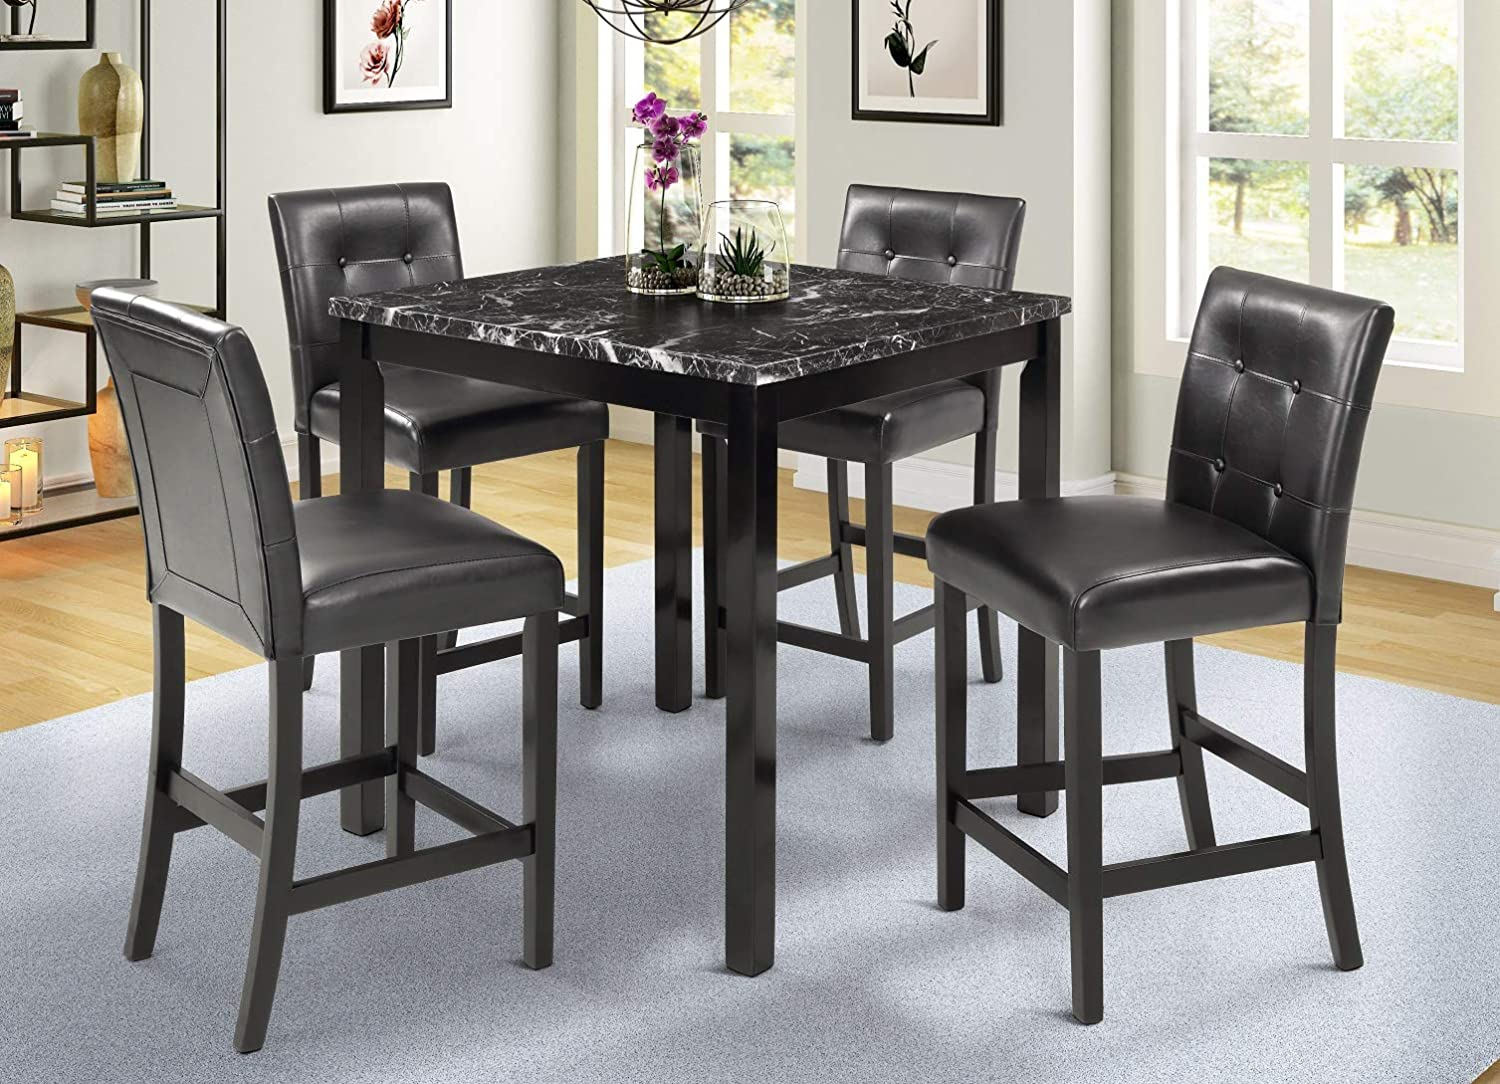 5 Piece Counter Height Dining Set Kitchen Table Furniture Set with 4 Chairs Dining Room Table and Bar Stools (Black High Back)